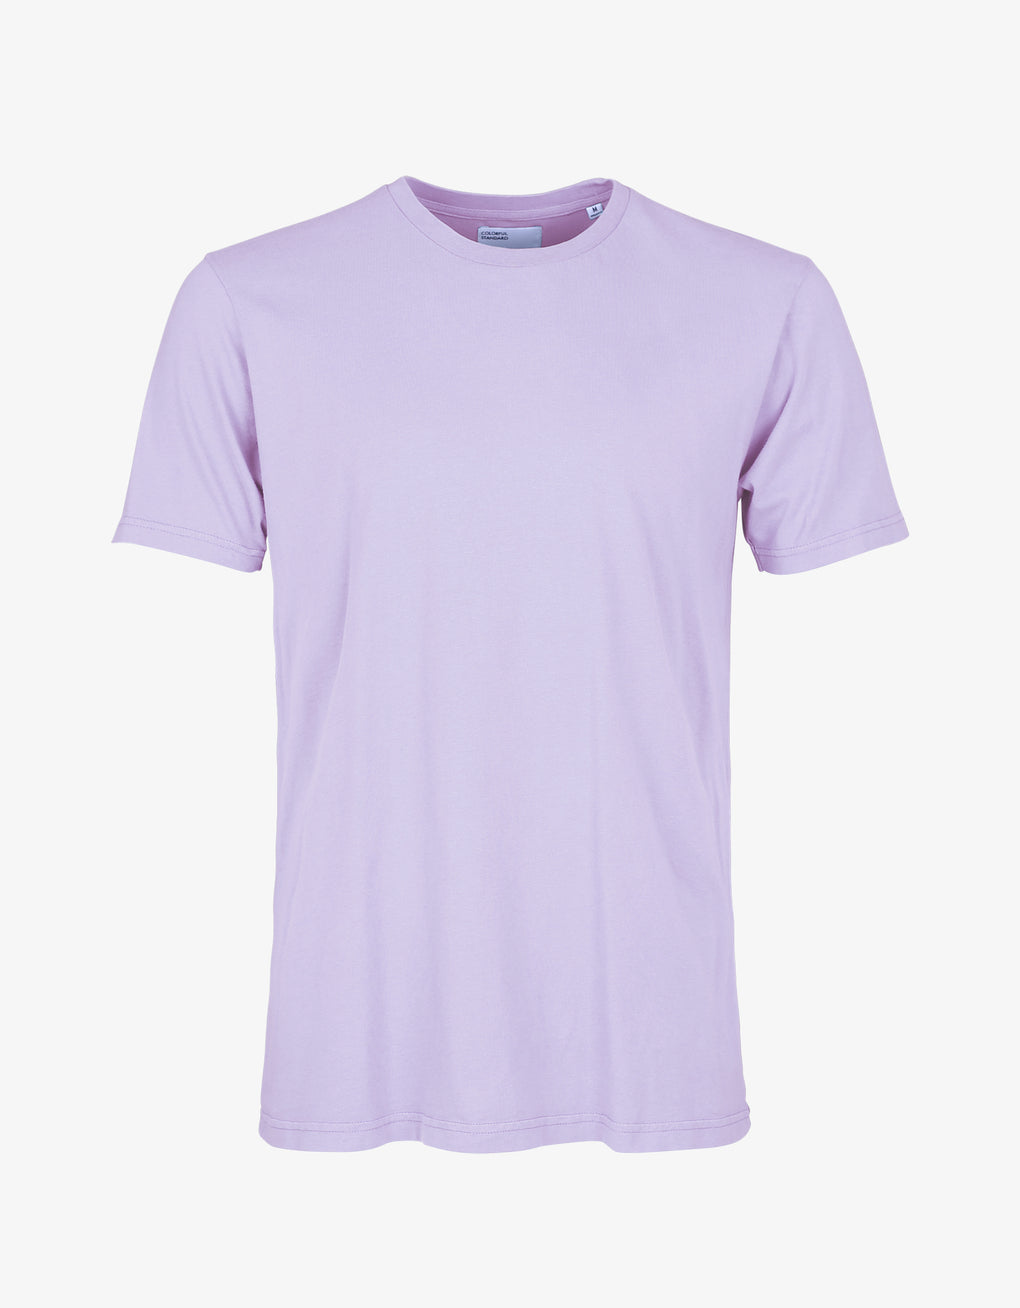 Colorful Standard Classic Organic Tee T-shirt Soft Lavender